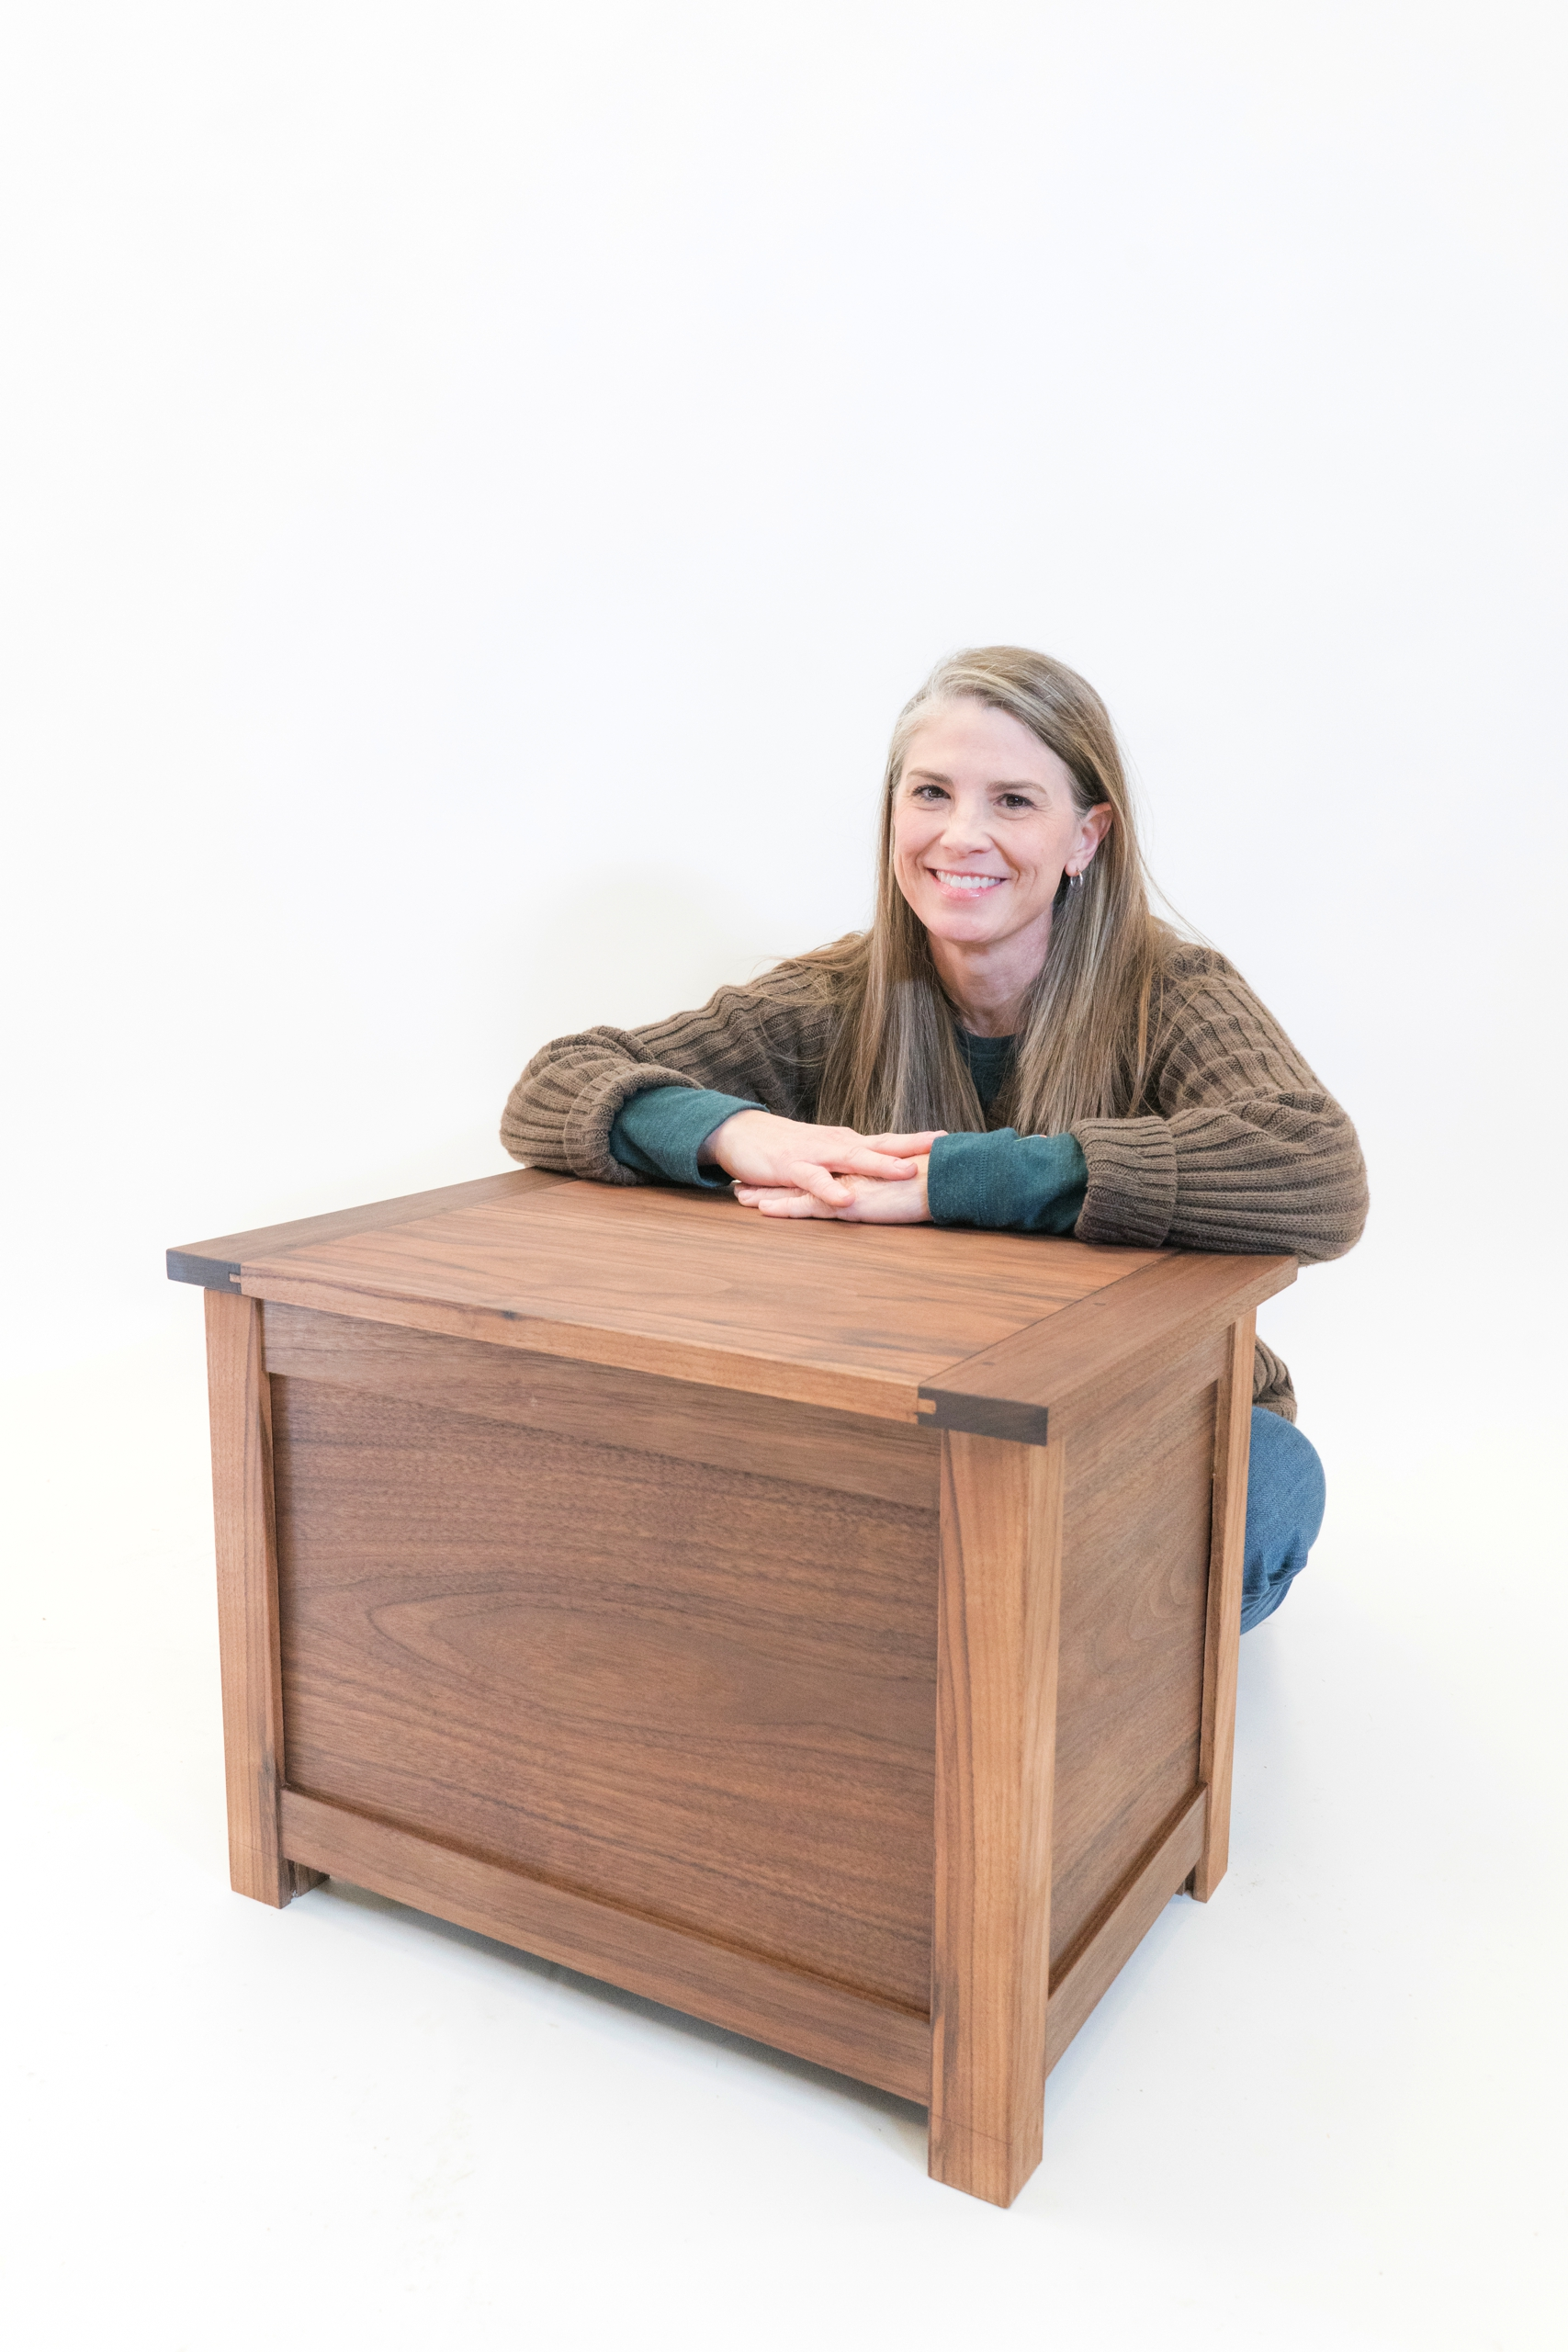 Dawn LeRoy, Graduate of Foundations of Woodworking, fall 2018